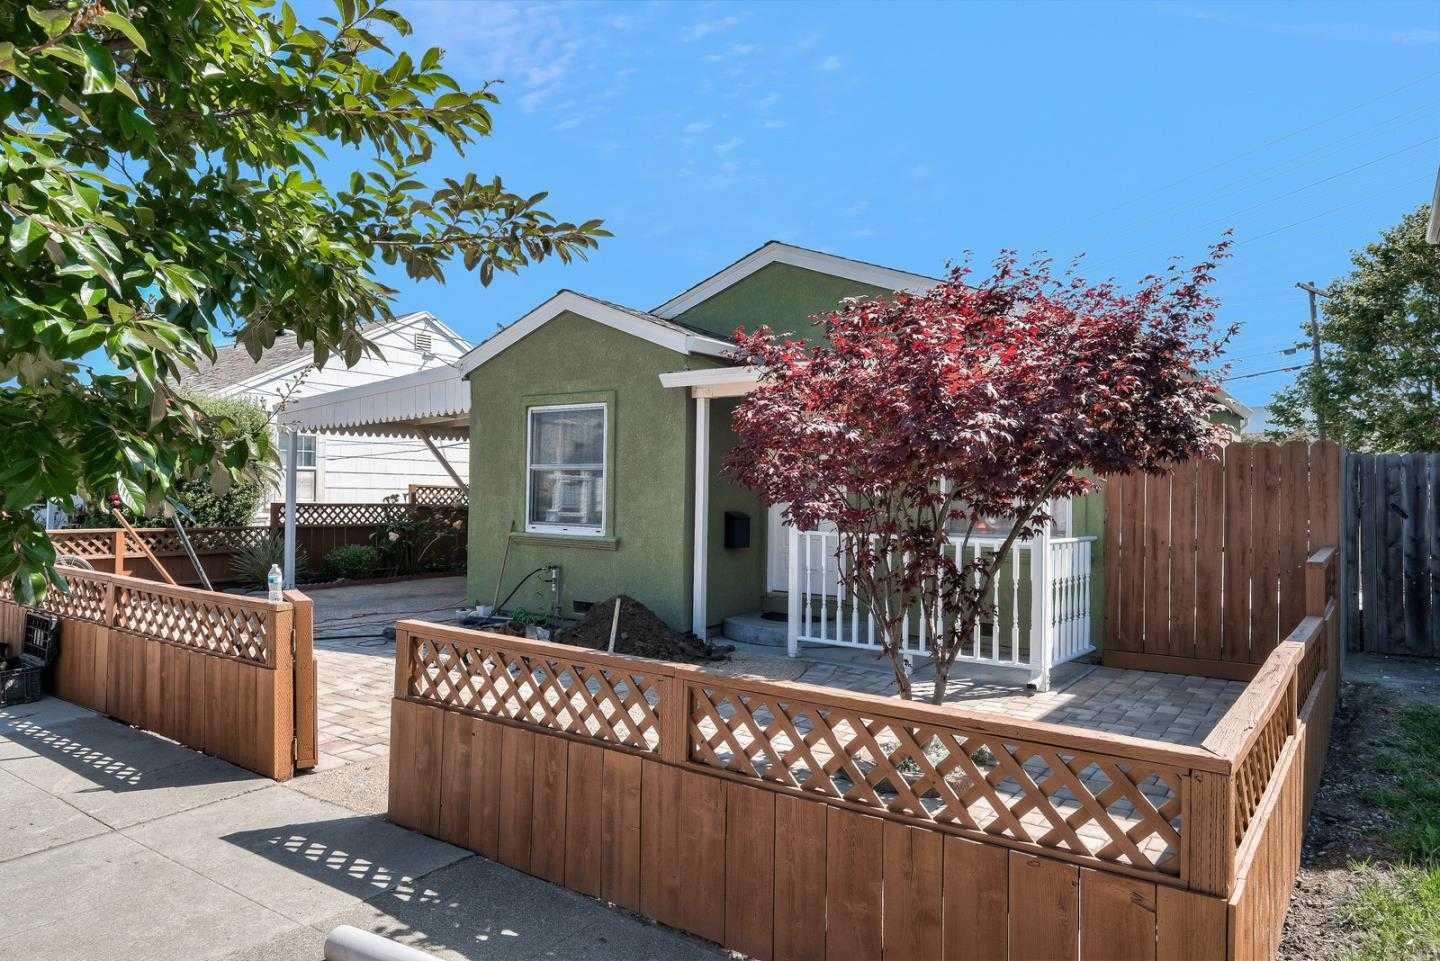 546 5th Ave San Bruno, CA 94066